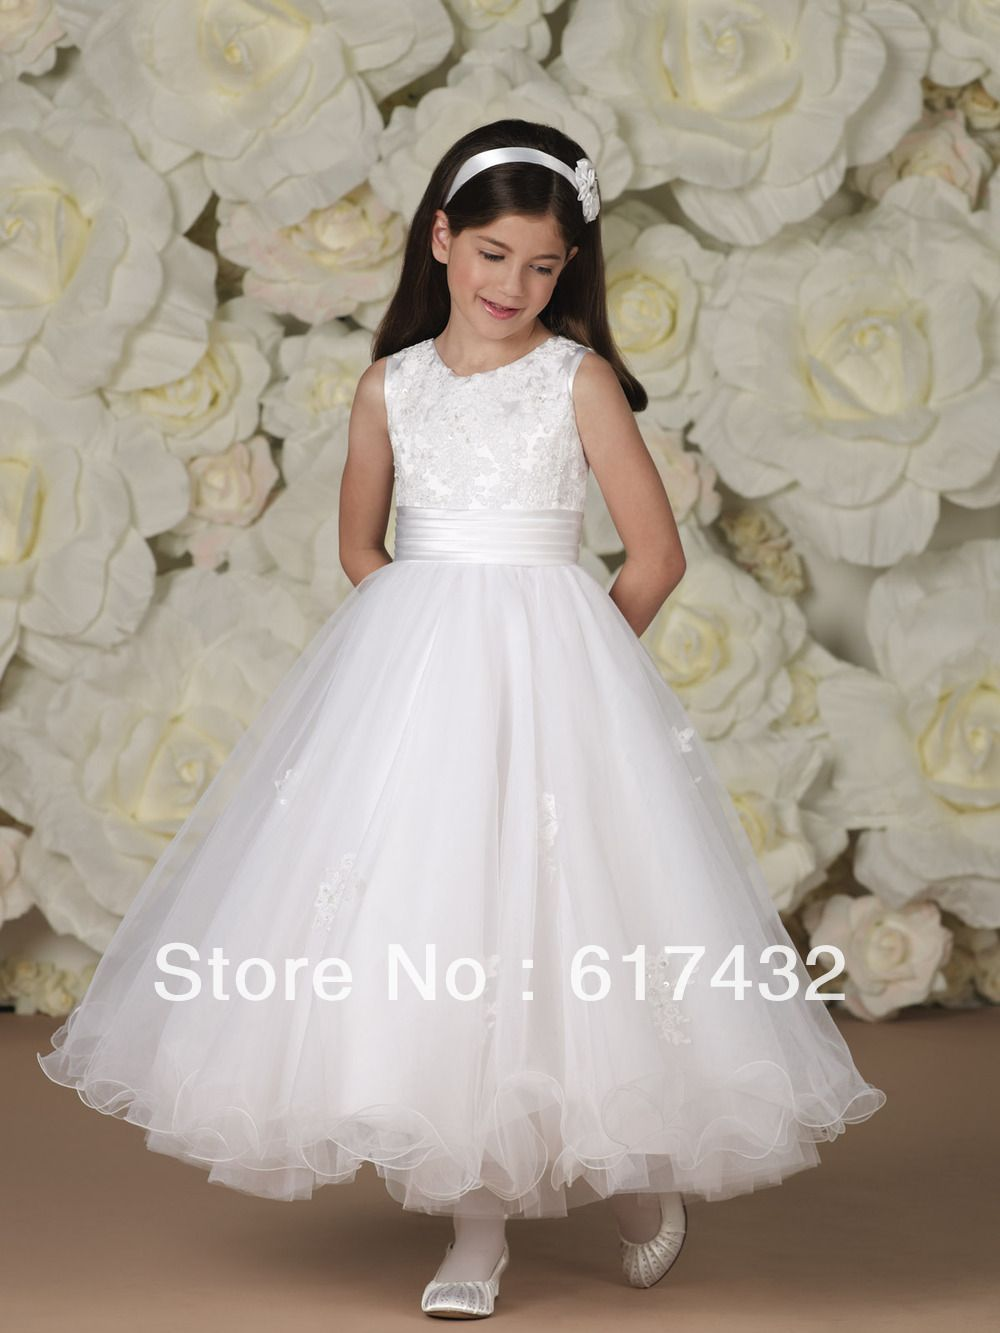 d854e5ab711 Flower Girl Dress Patterns